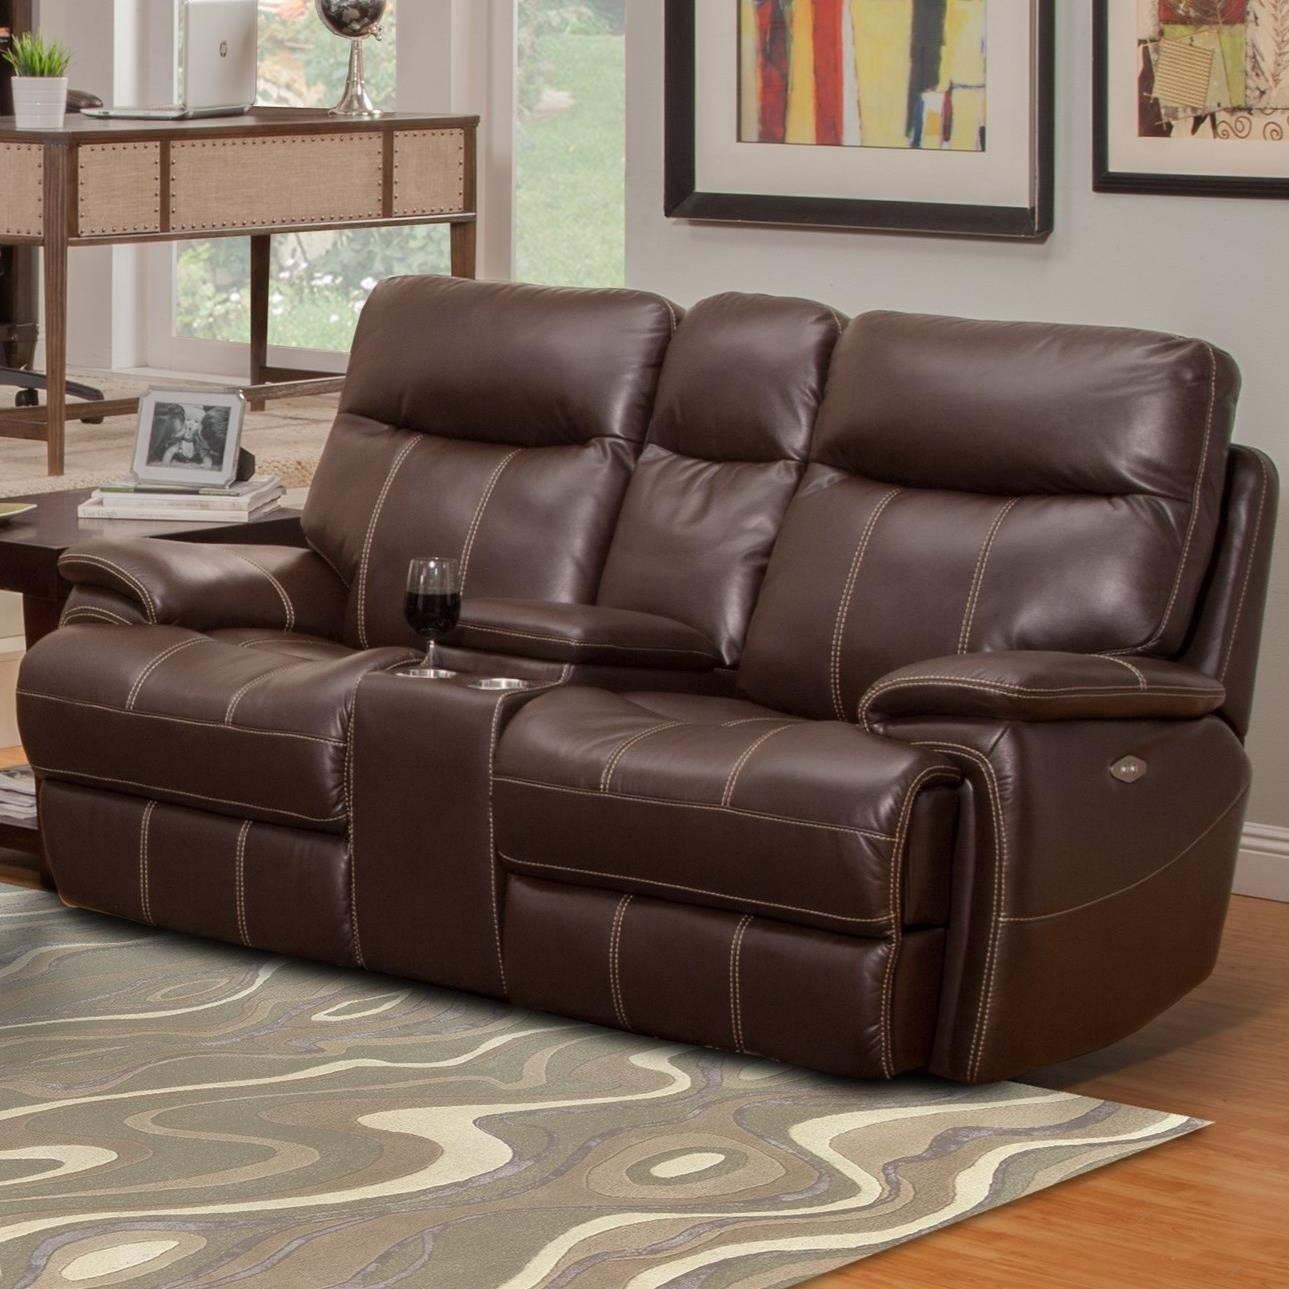 Parker living dylan dual recliner power console loveseat with cup holders sheely 39 s furniture Loveseat with cup holders